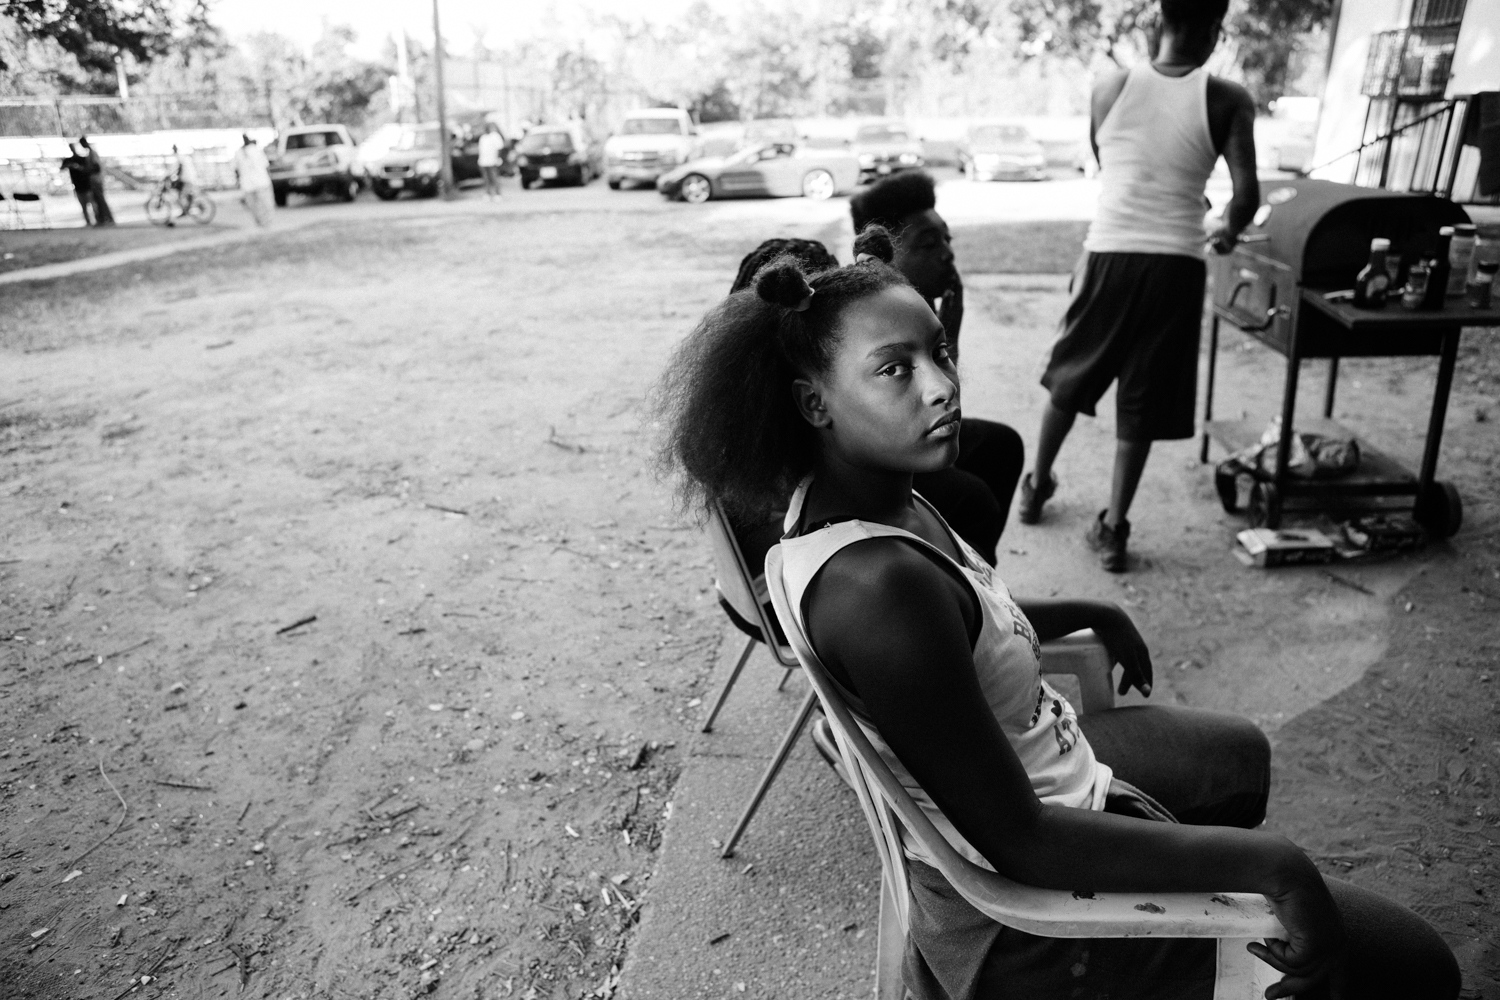 """Elizabeth gazes out of the fenced basketball court in Barry Farm on September 5, 2016. """"I want people to know the struggle we went through in this hood. We had no mon-ey. Let me tell you this song. We had no money, no jobs, no car, nothing."""" Elizabeth recalls holding a cardboard sign at the Gallery Place Metro Station with her family. In good times, they had enough money to rent a hotel room. In bad times, they had to sleep in a van on the streets. By 2013, Marshall's family found their way to Barry Farm Public Housing. """"That's when we started our new life,"""" says Elizabeth."""